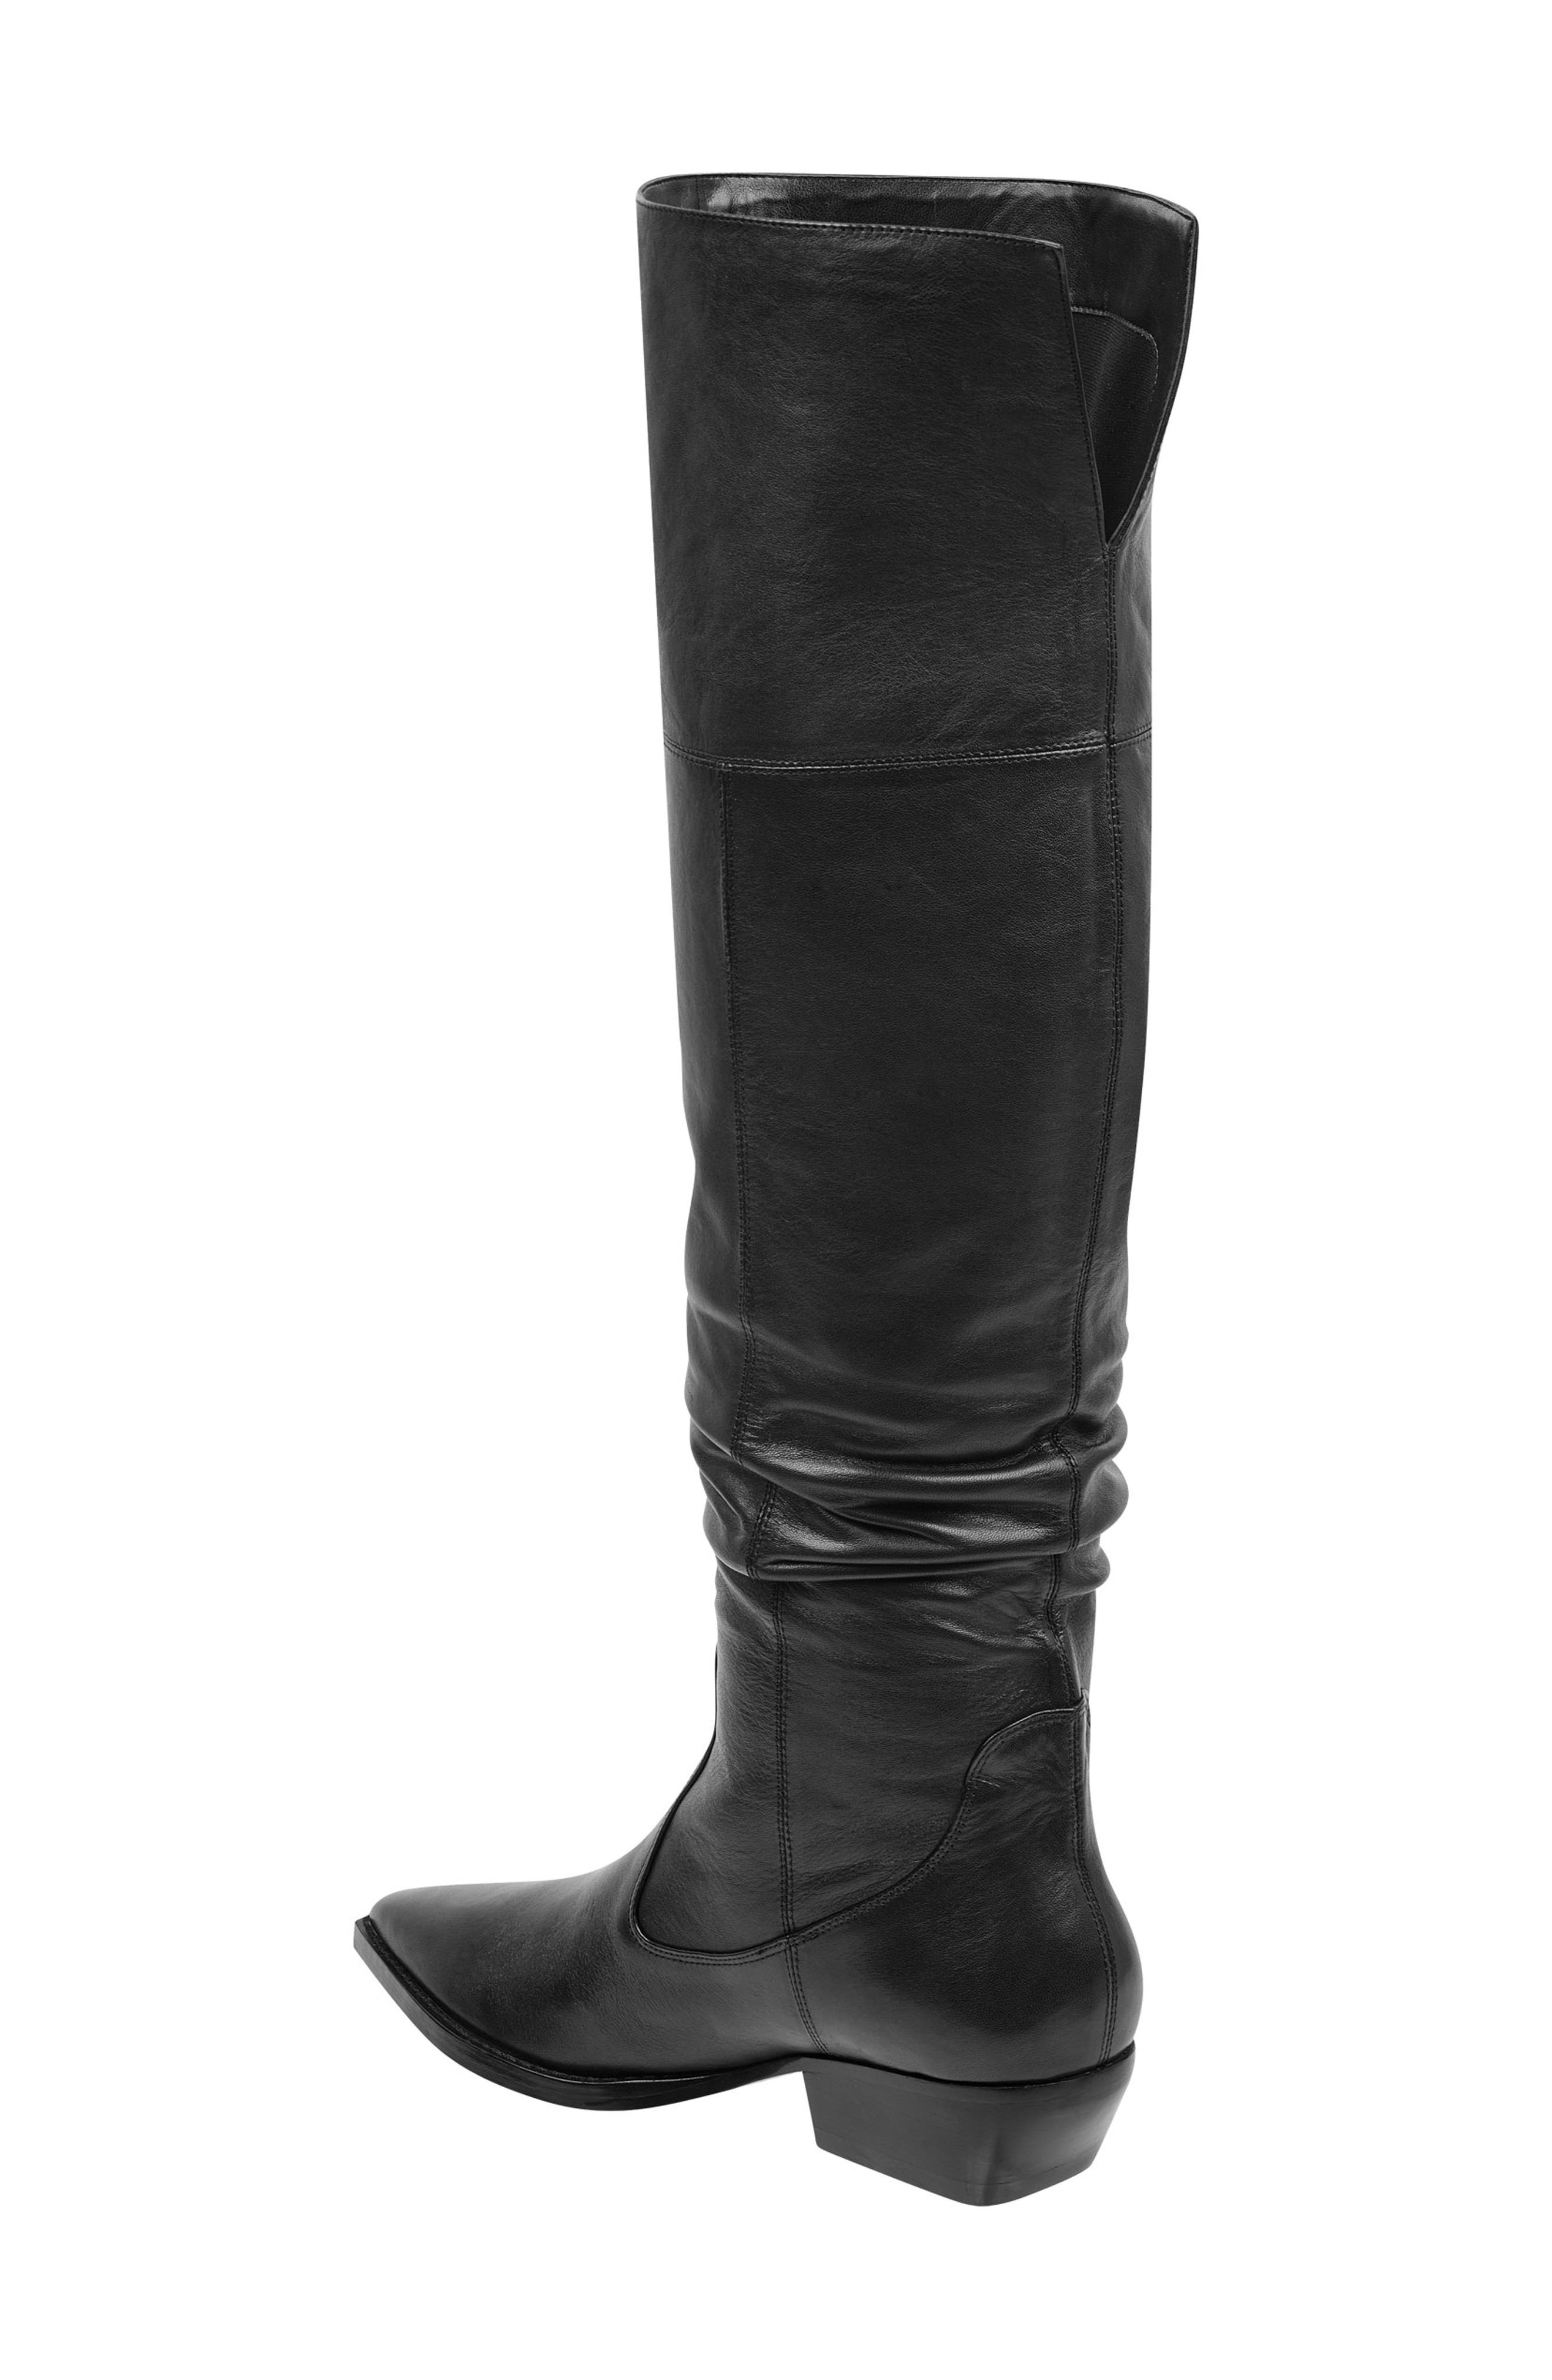 Ocea Over the Knee Boot,                             Alternate thumbnail 2, color,                             001